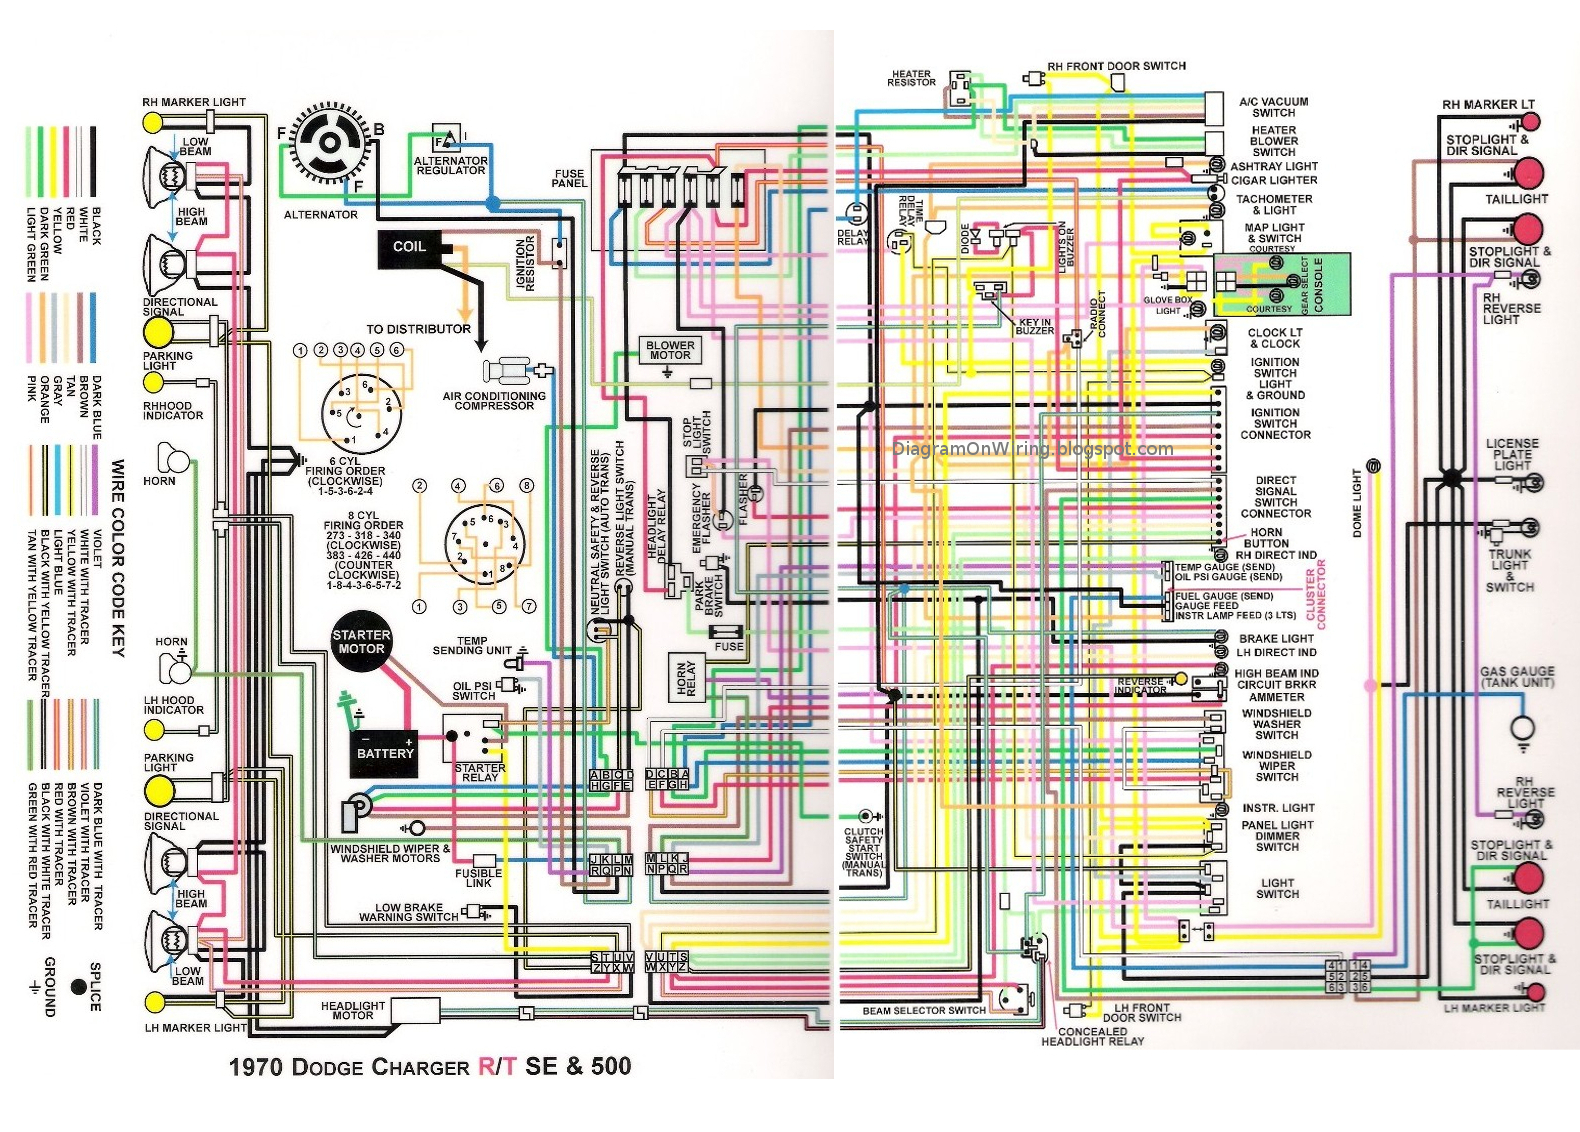 Dodge Charger RT SE and 500 1970 Complete Wiring Diagram All